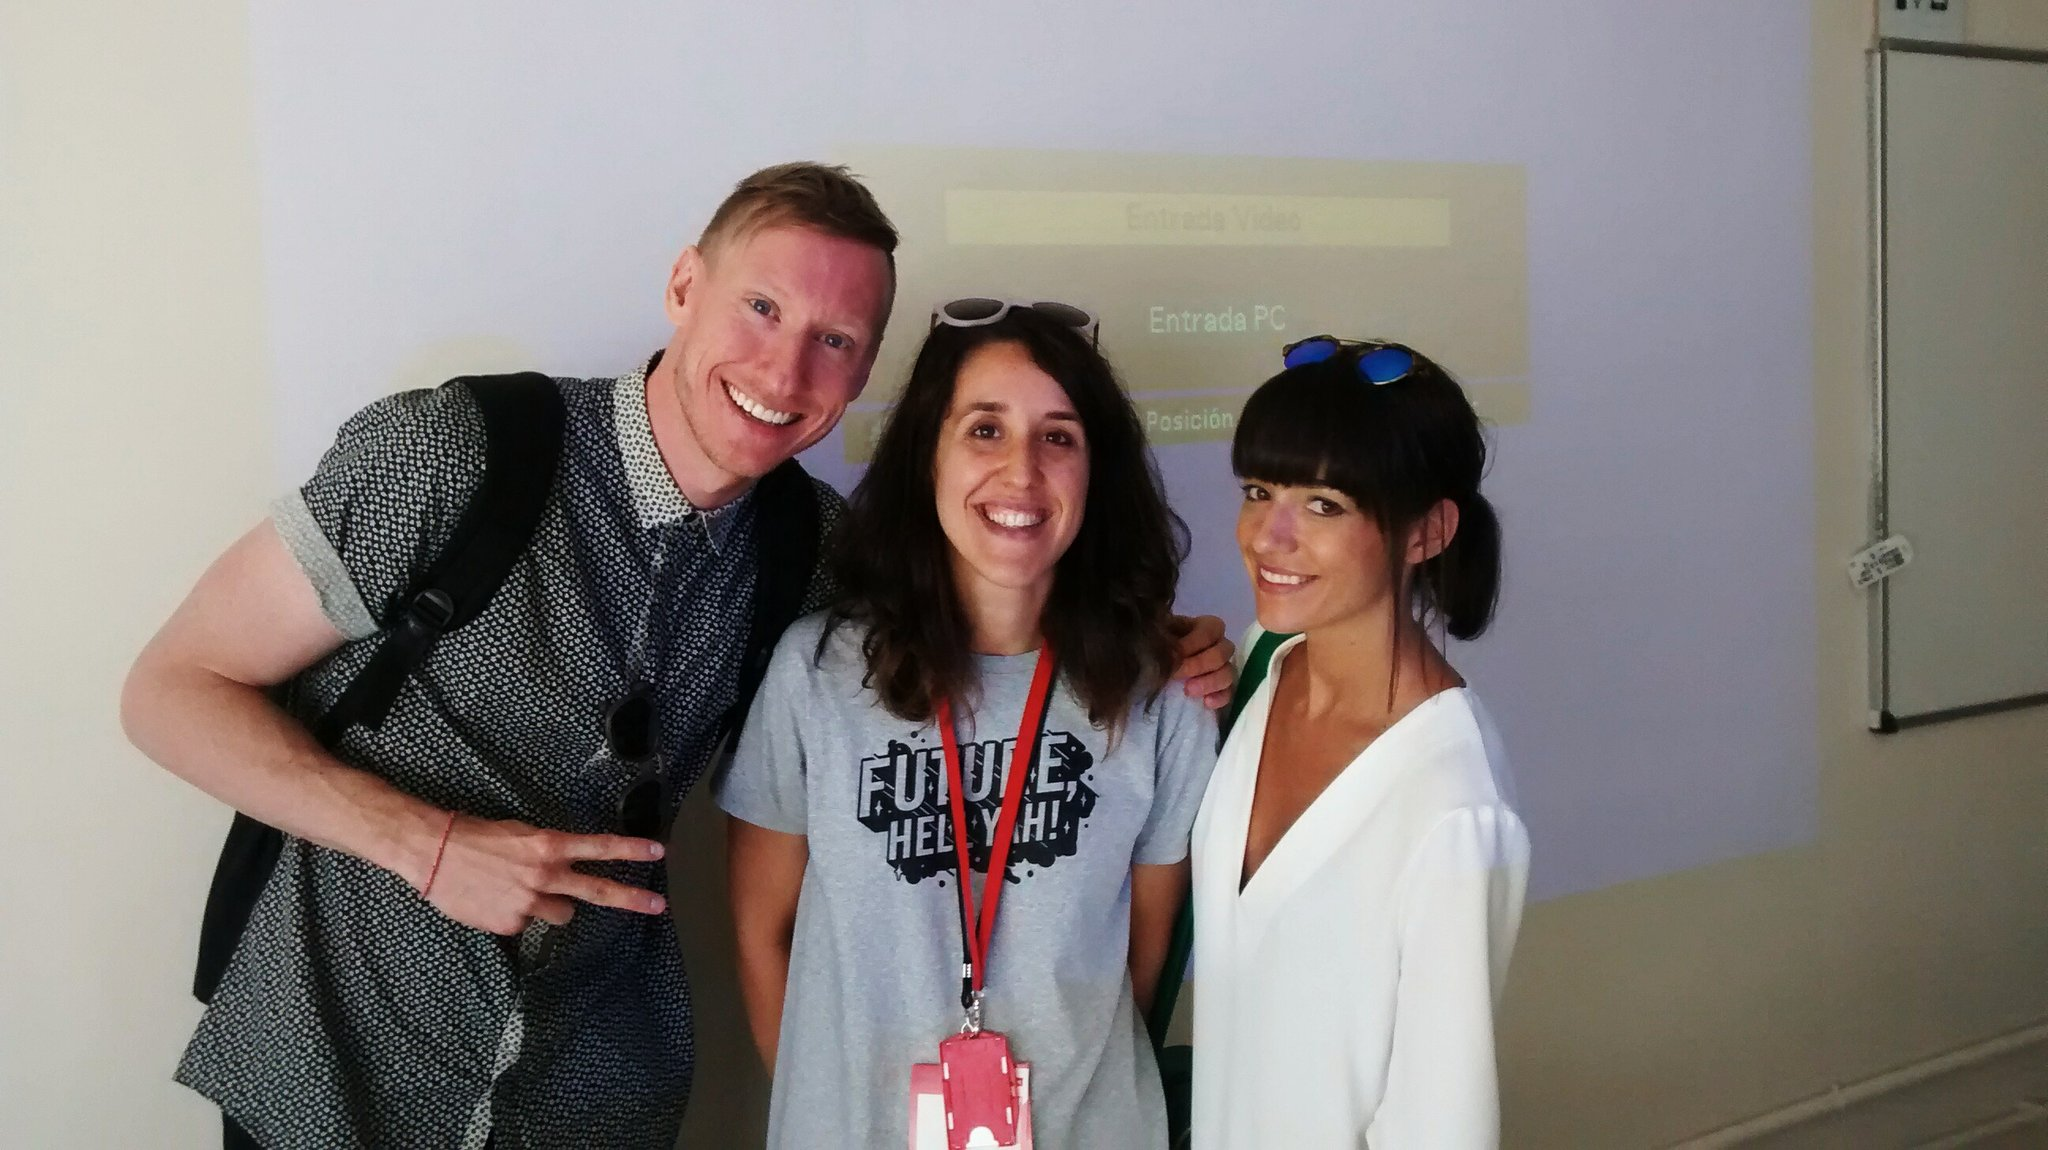 AWESOME Workshop @webvisions #webvisions https://t.co/sG5PEKgJ0h